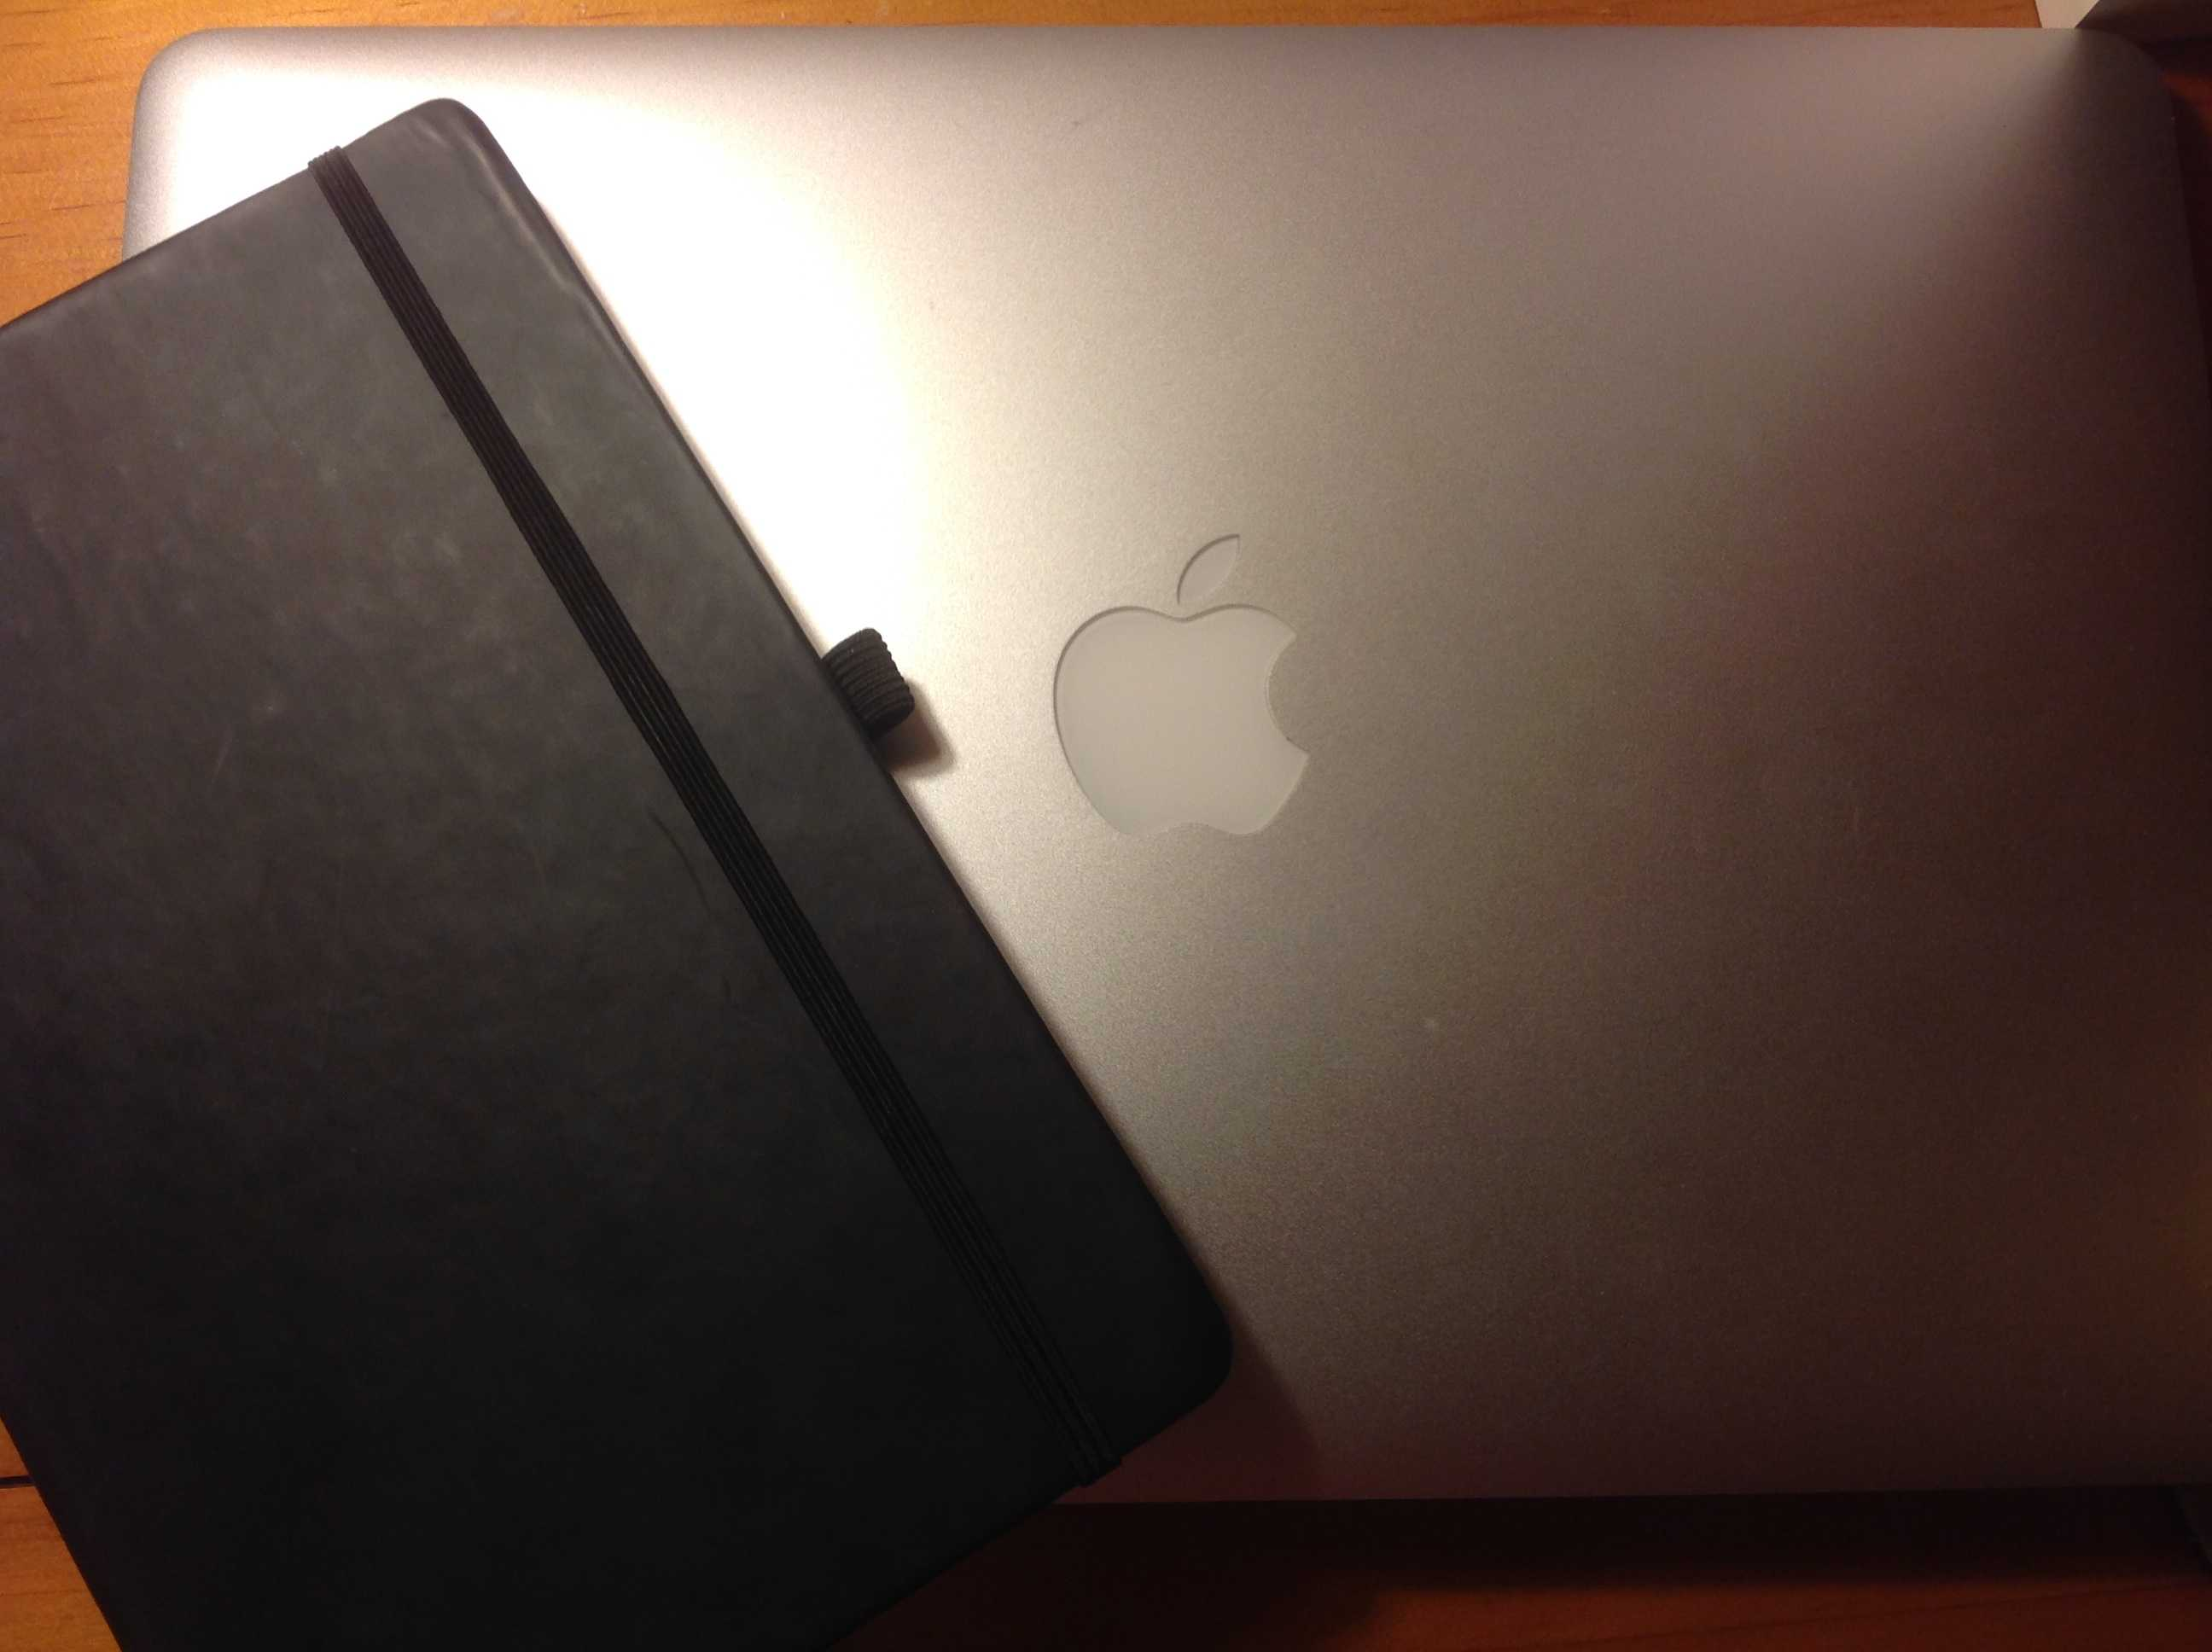 The planner and laptop I use to plan tasks and complete work